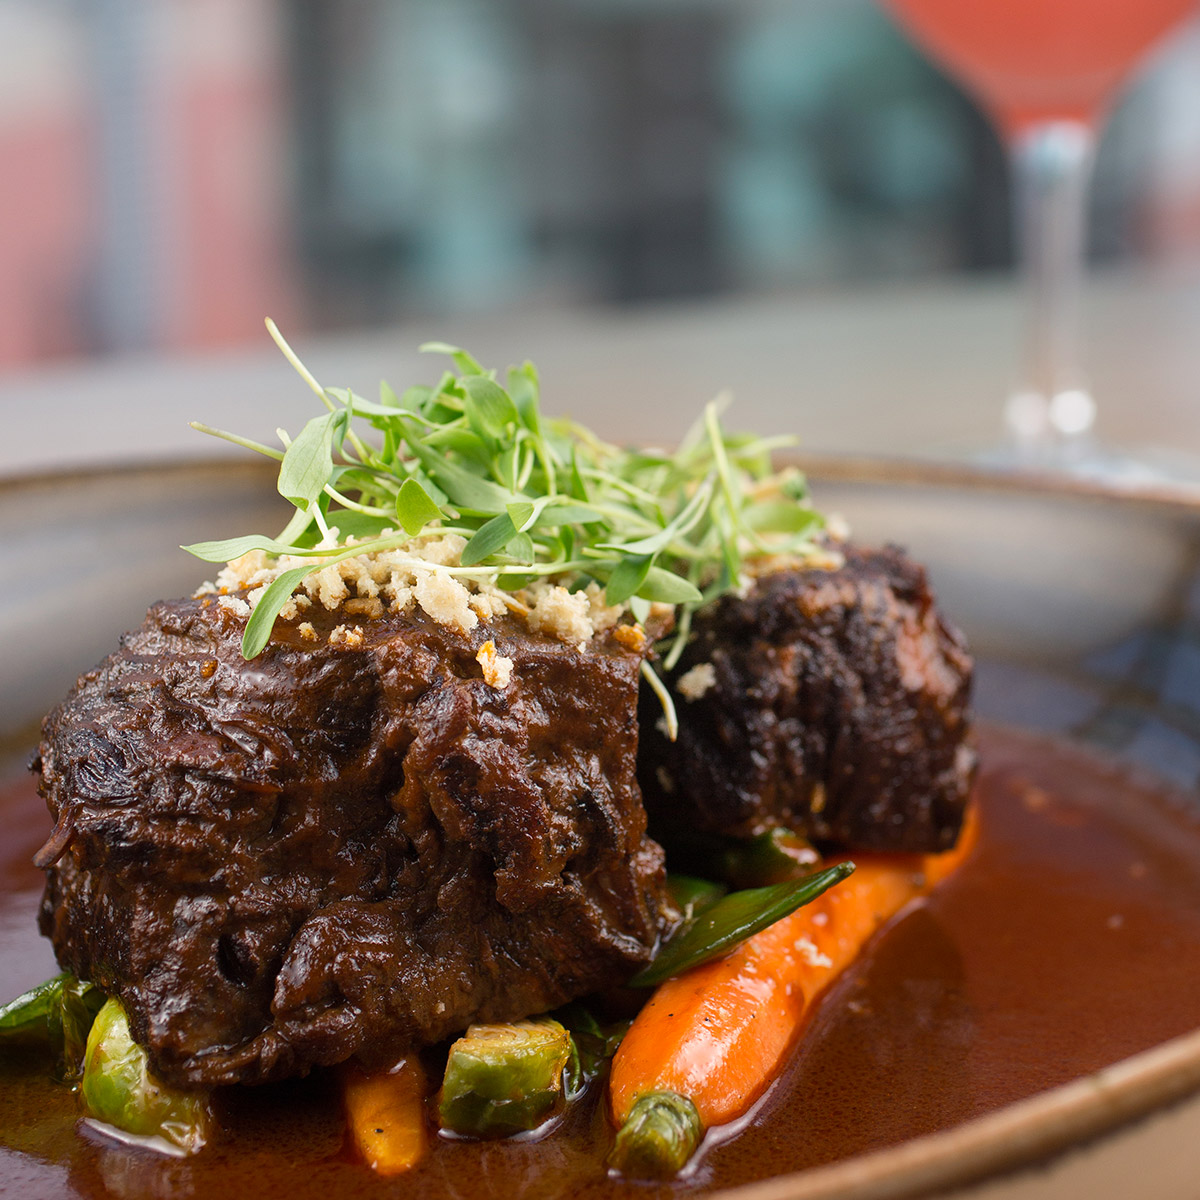 Italian Blend Food suggestion - Braised Shortrib